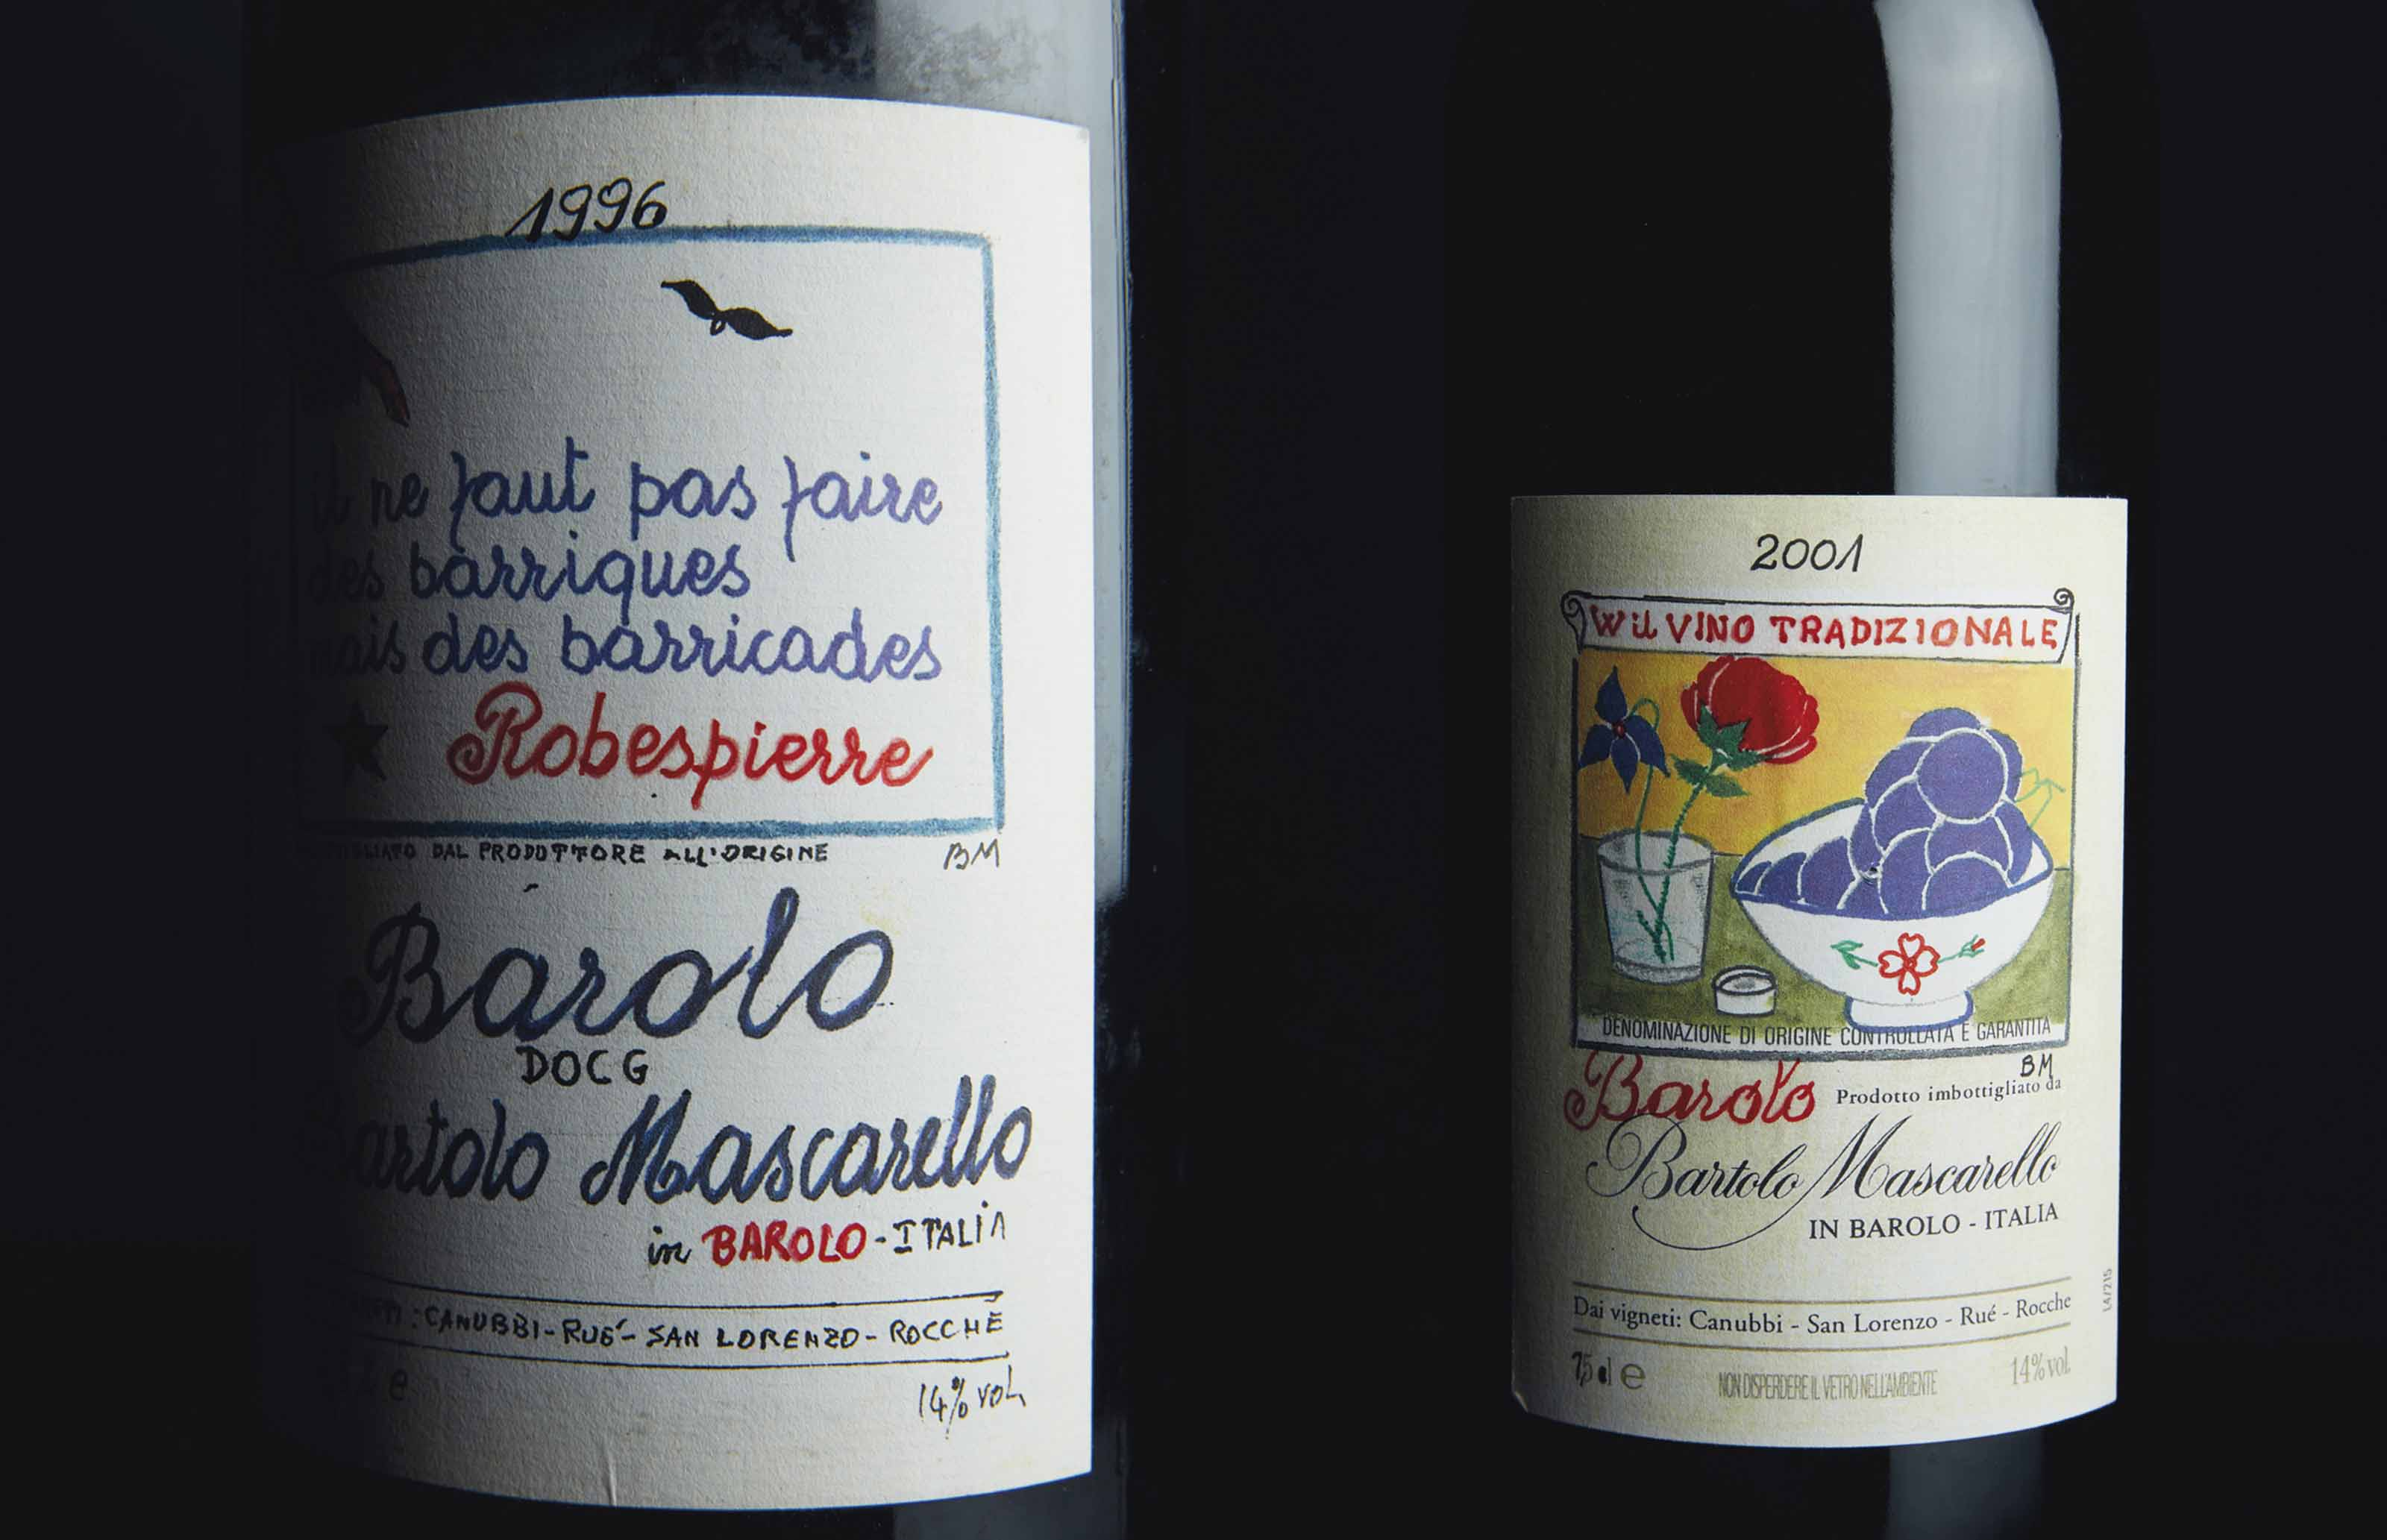 Bartolo Mascarello, Barolo, Art Label  Piedmont 1996  Label with original, hand-painted artwork by Bartolo Mascarello t magnum (1) 2001  Label with original, hand-painted artwork by Bartolo Mascarello  magnum (1) 2004  Reproduction of original, hand-painted artwork by Bartolo Mascarello  (1)